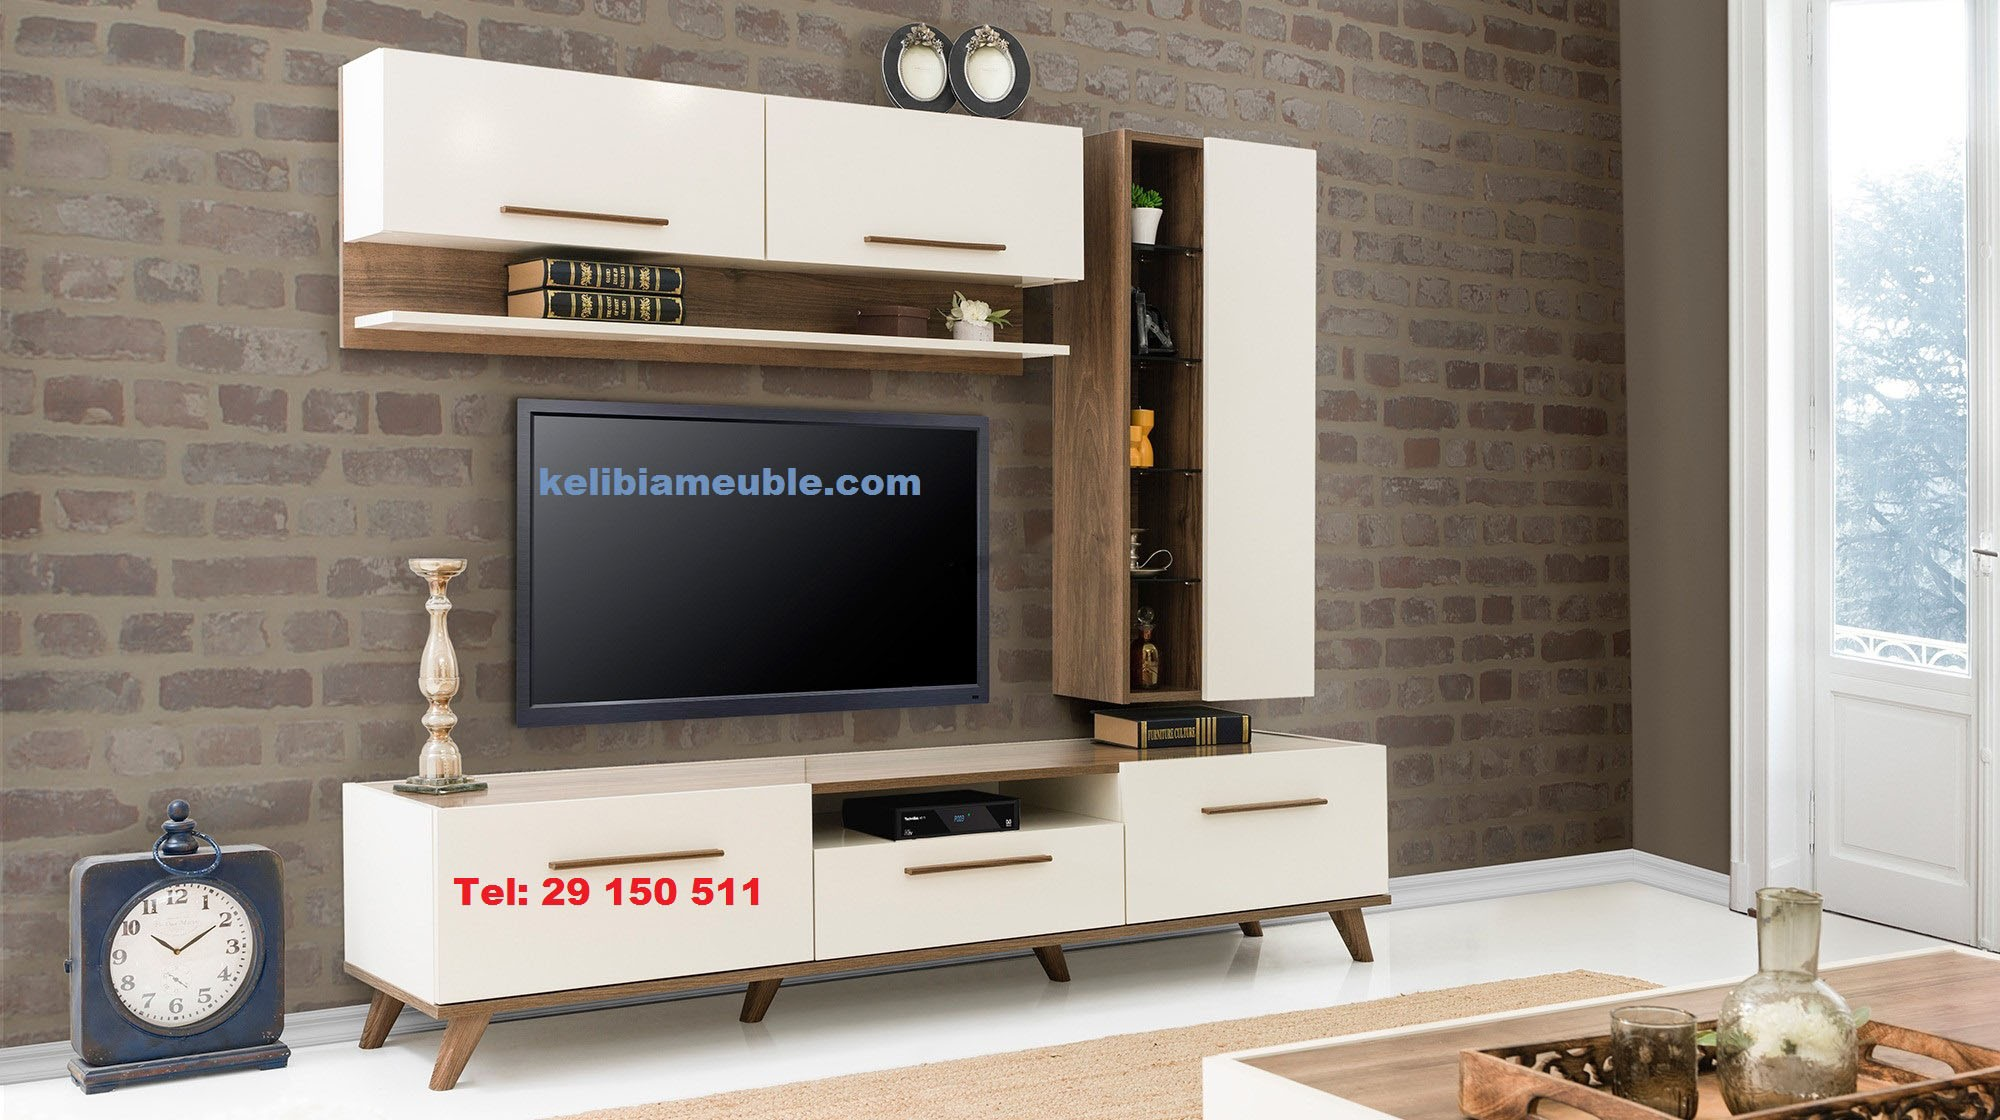 Moderne Meubles Meuble Tv Moderne Quotdream Quot